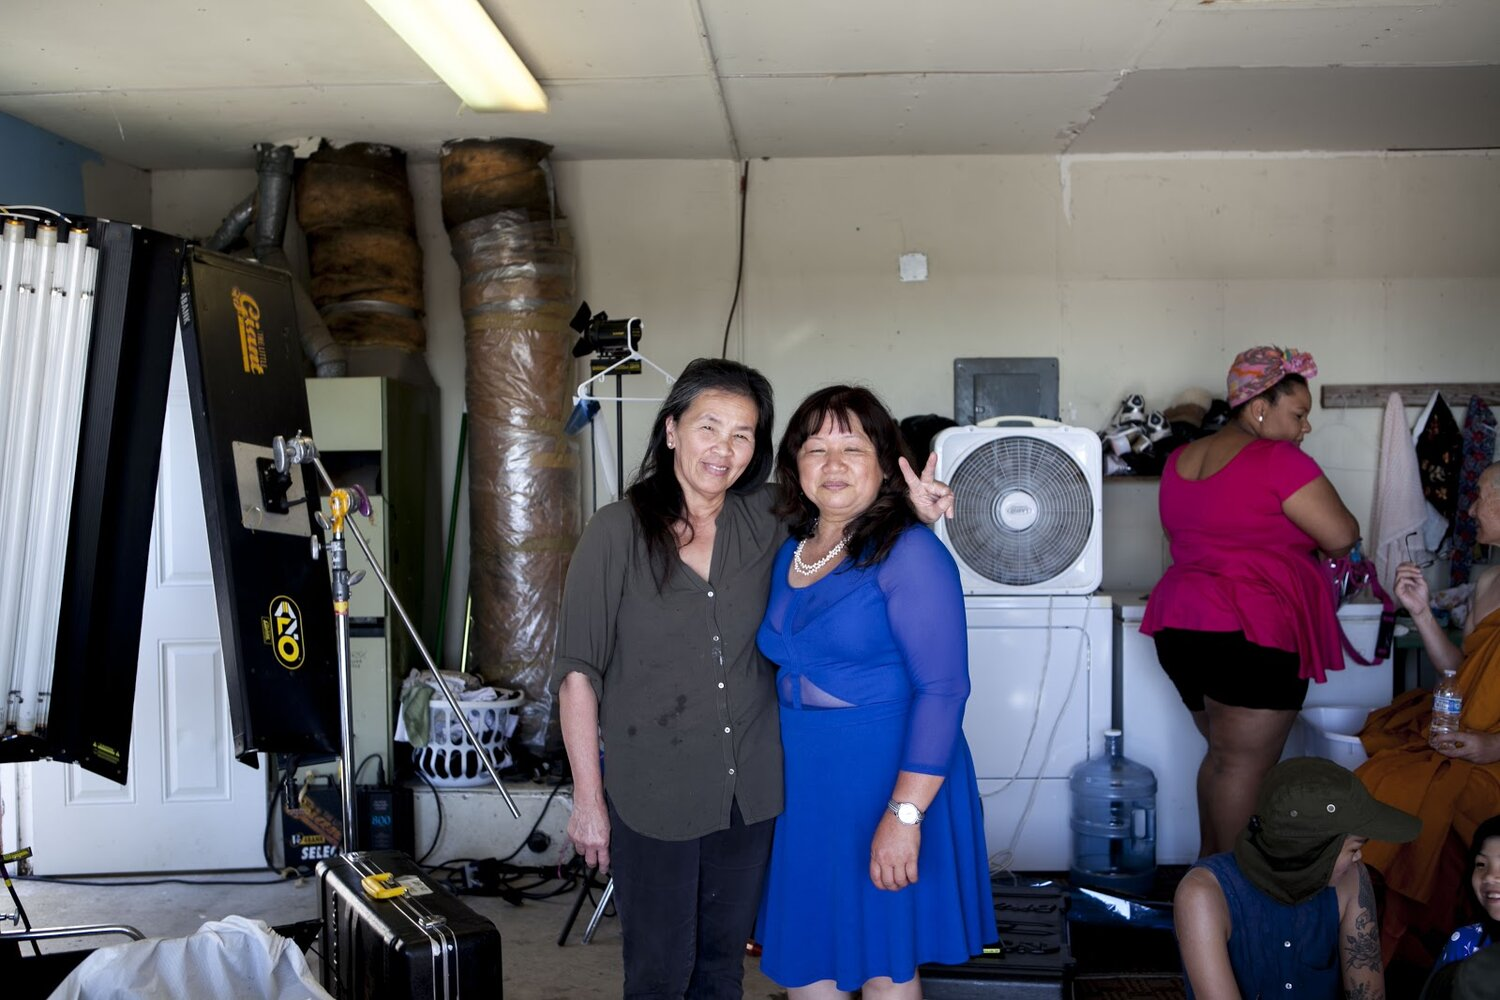 Diem Mai (Director Sal Tran's mother) is posing next to actress Thu Pham who portrays Co Diem in the story.